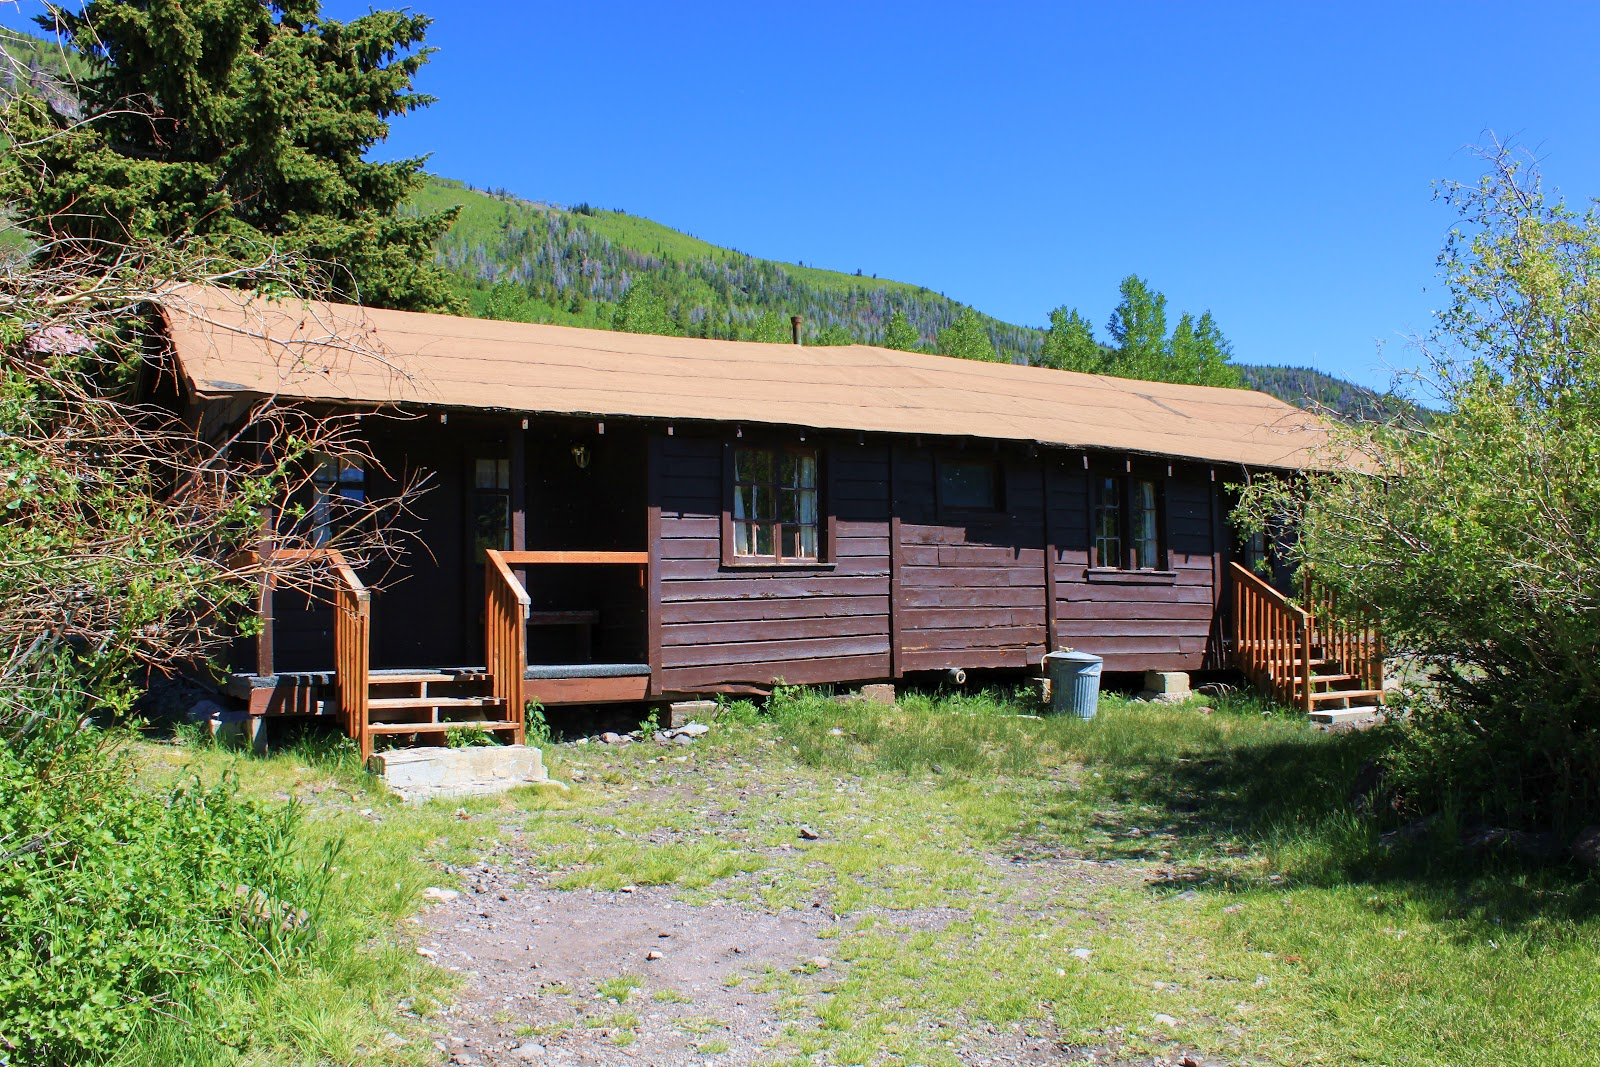 lazy dorms lizard cabins cabin and utah in the hostel rentals at affordable group rooms